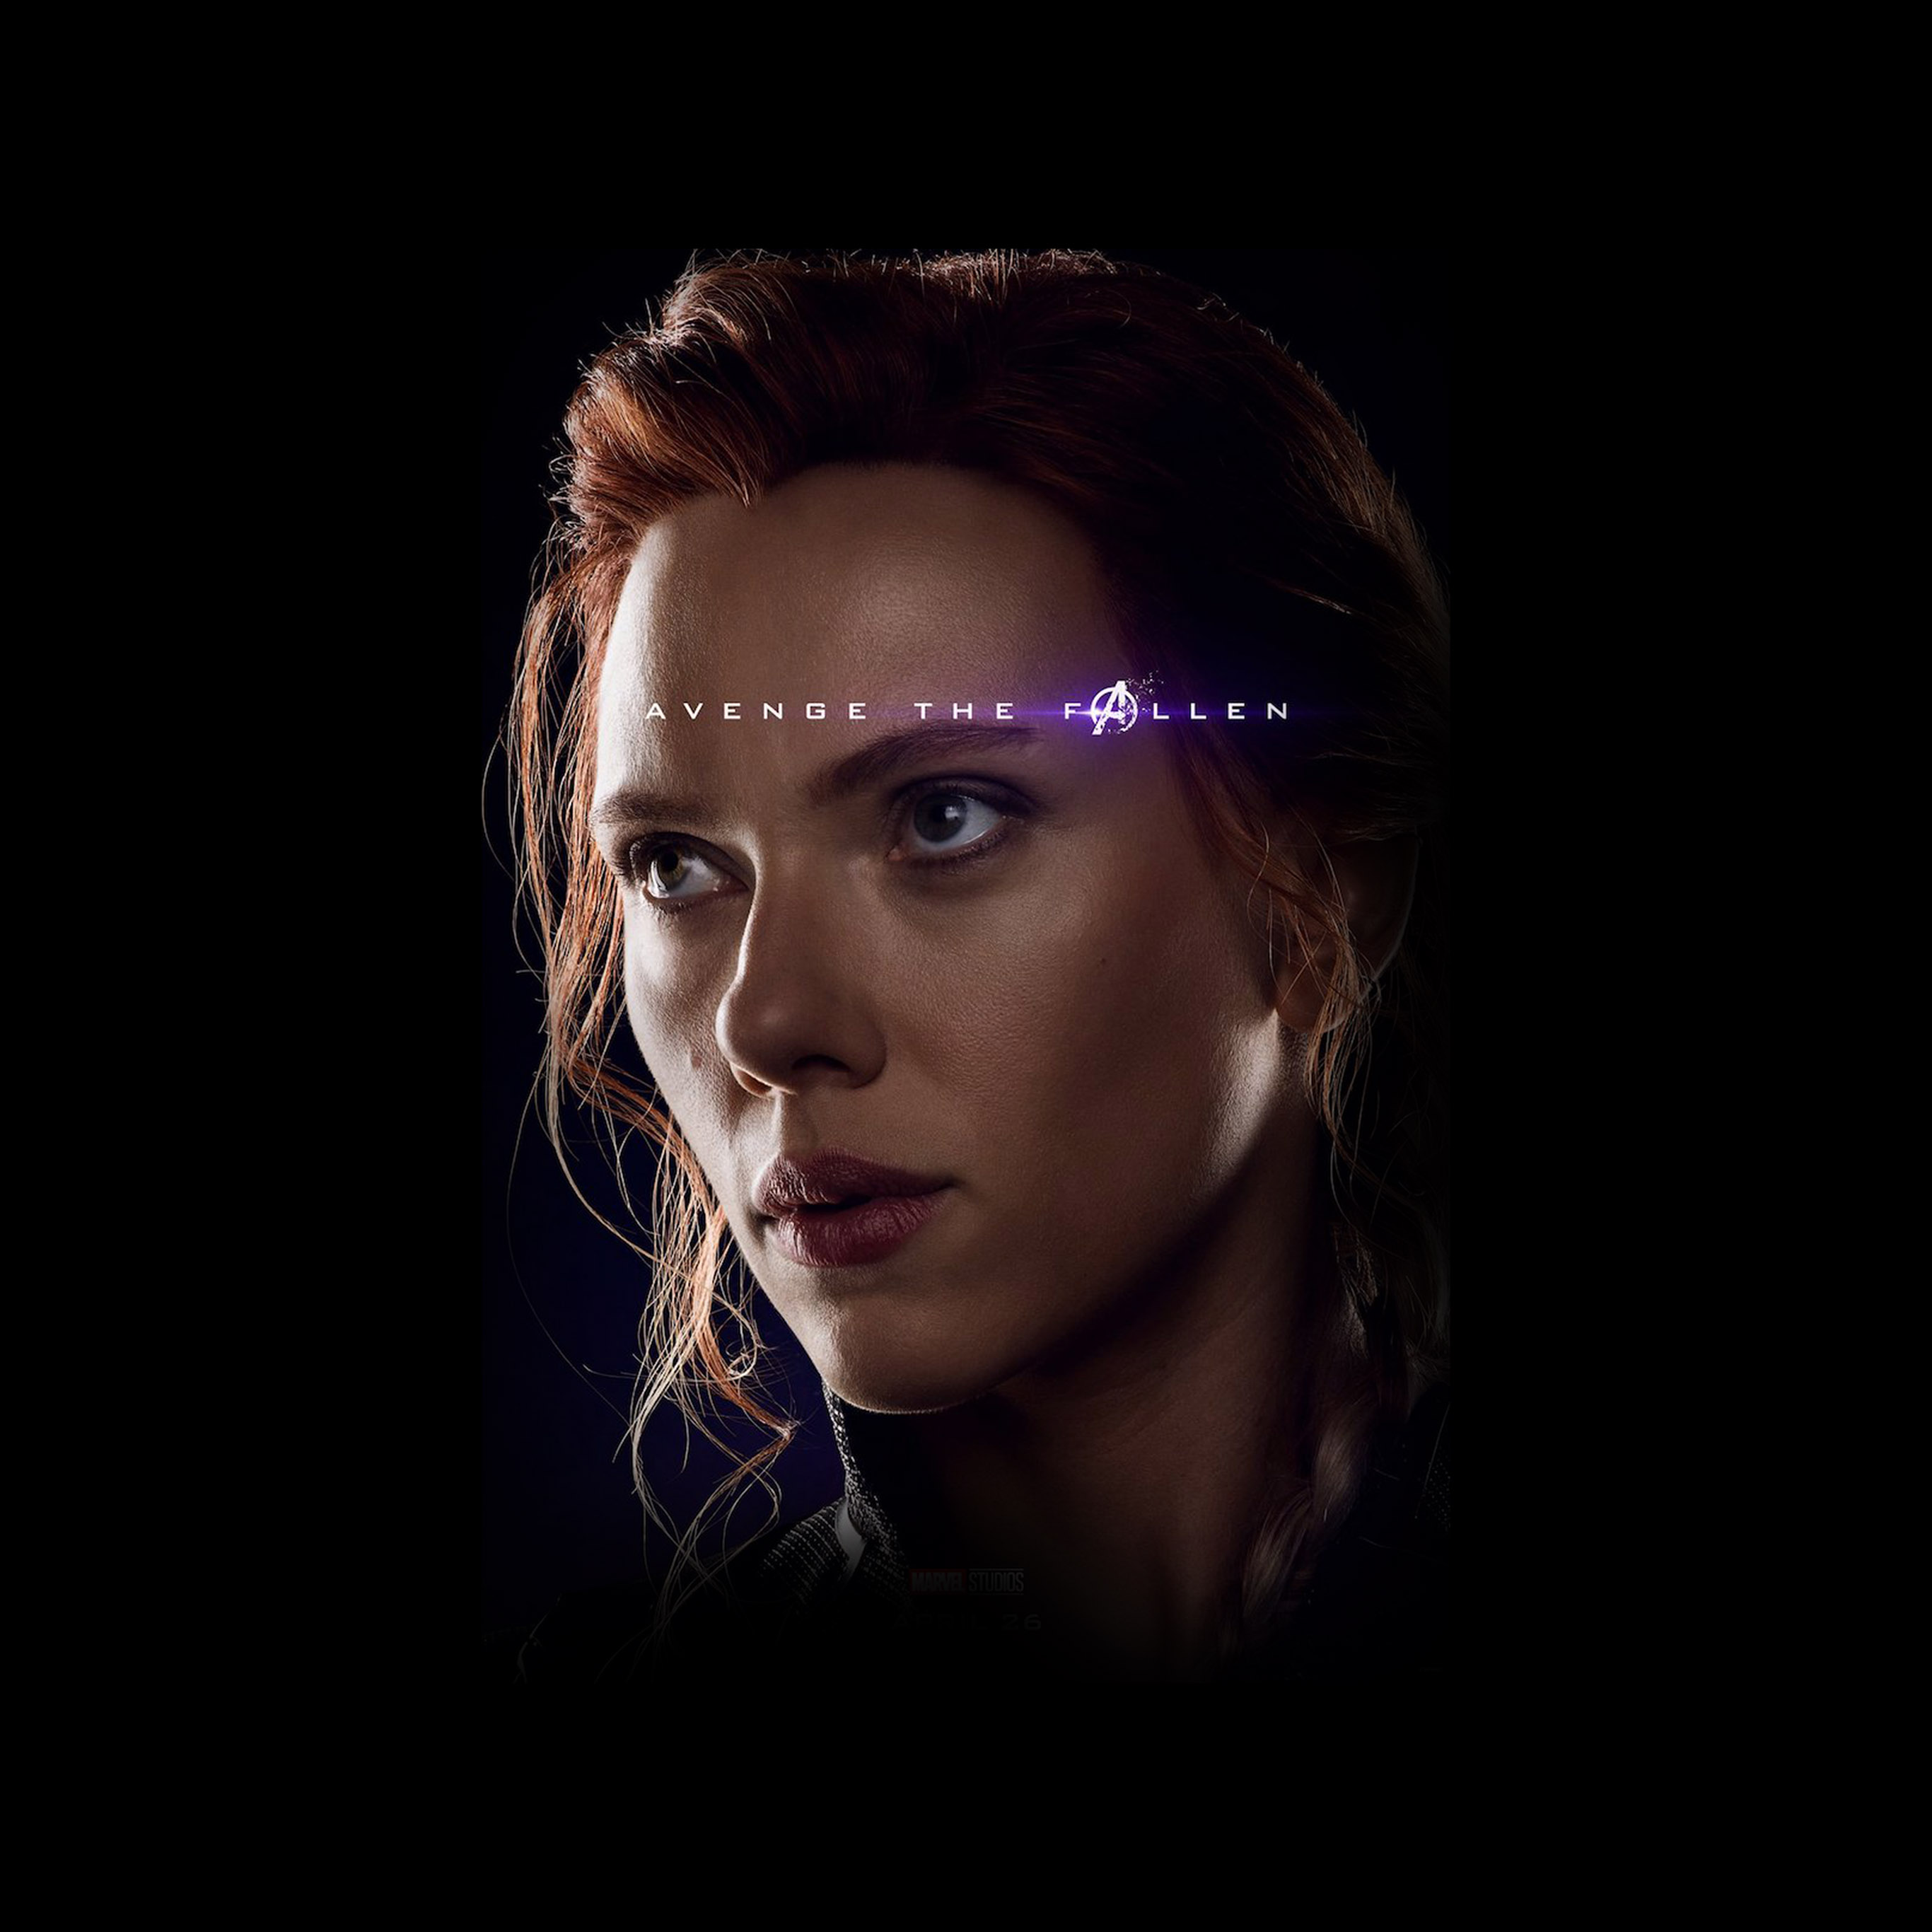 Bi42 Avengers Black Widow Hero Endgame Poster Marvel Art